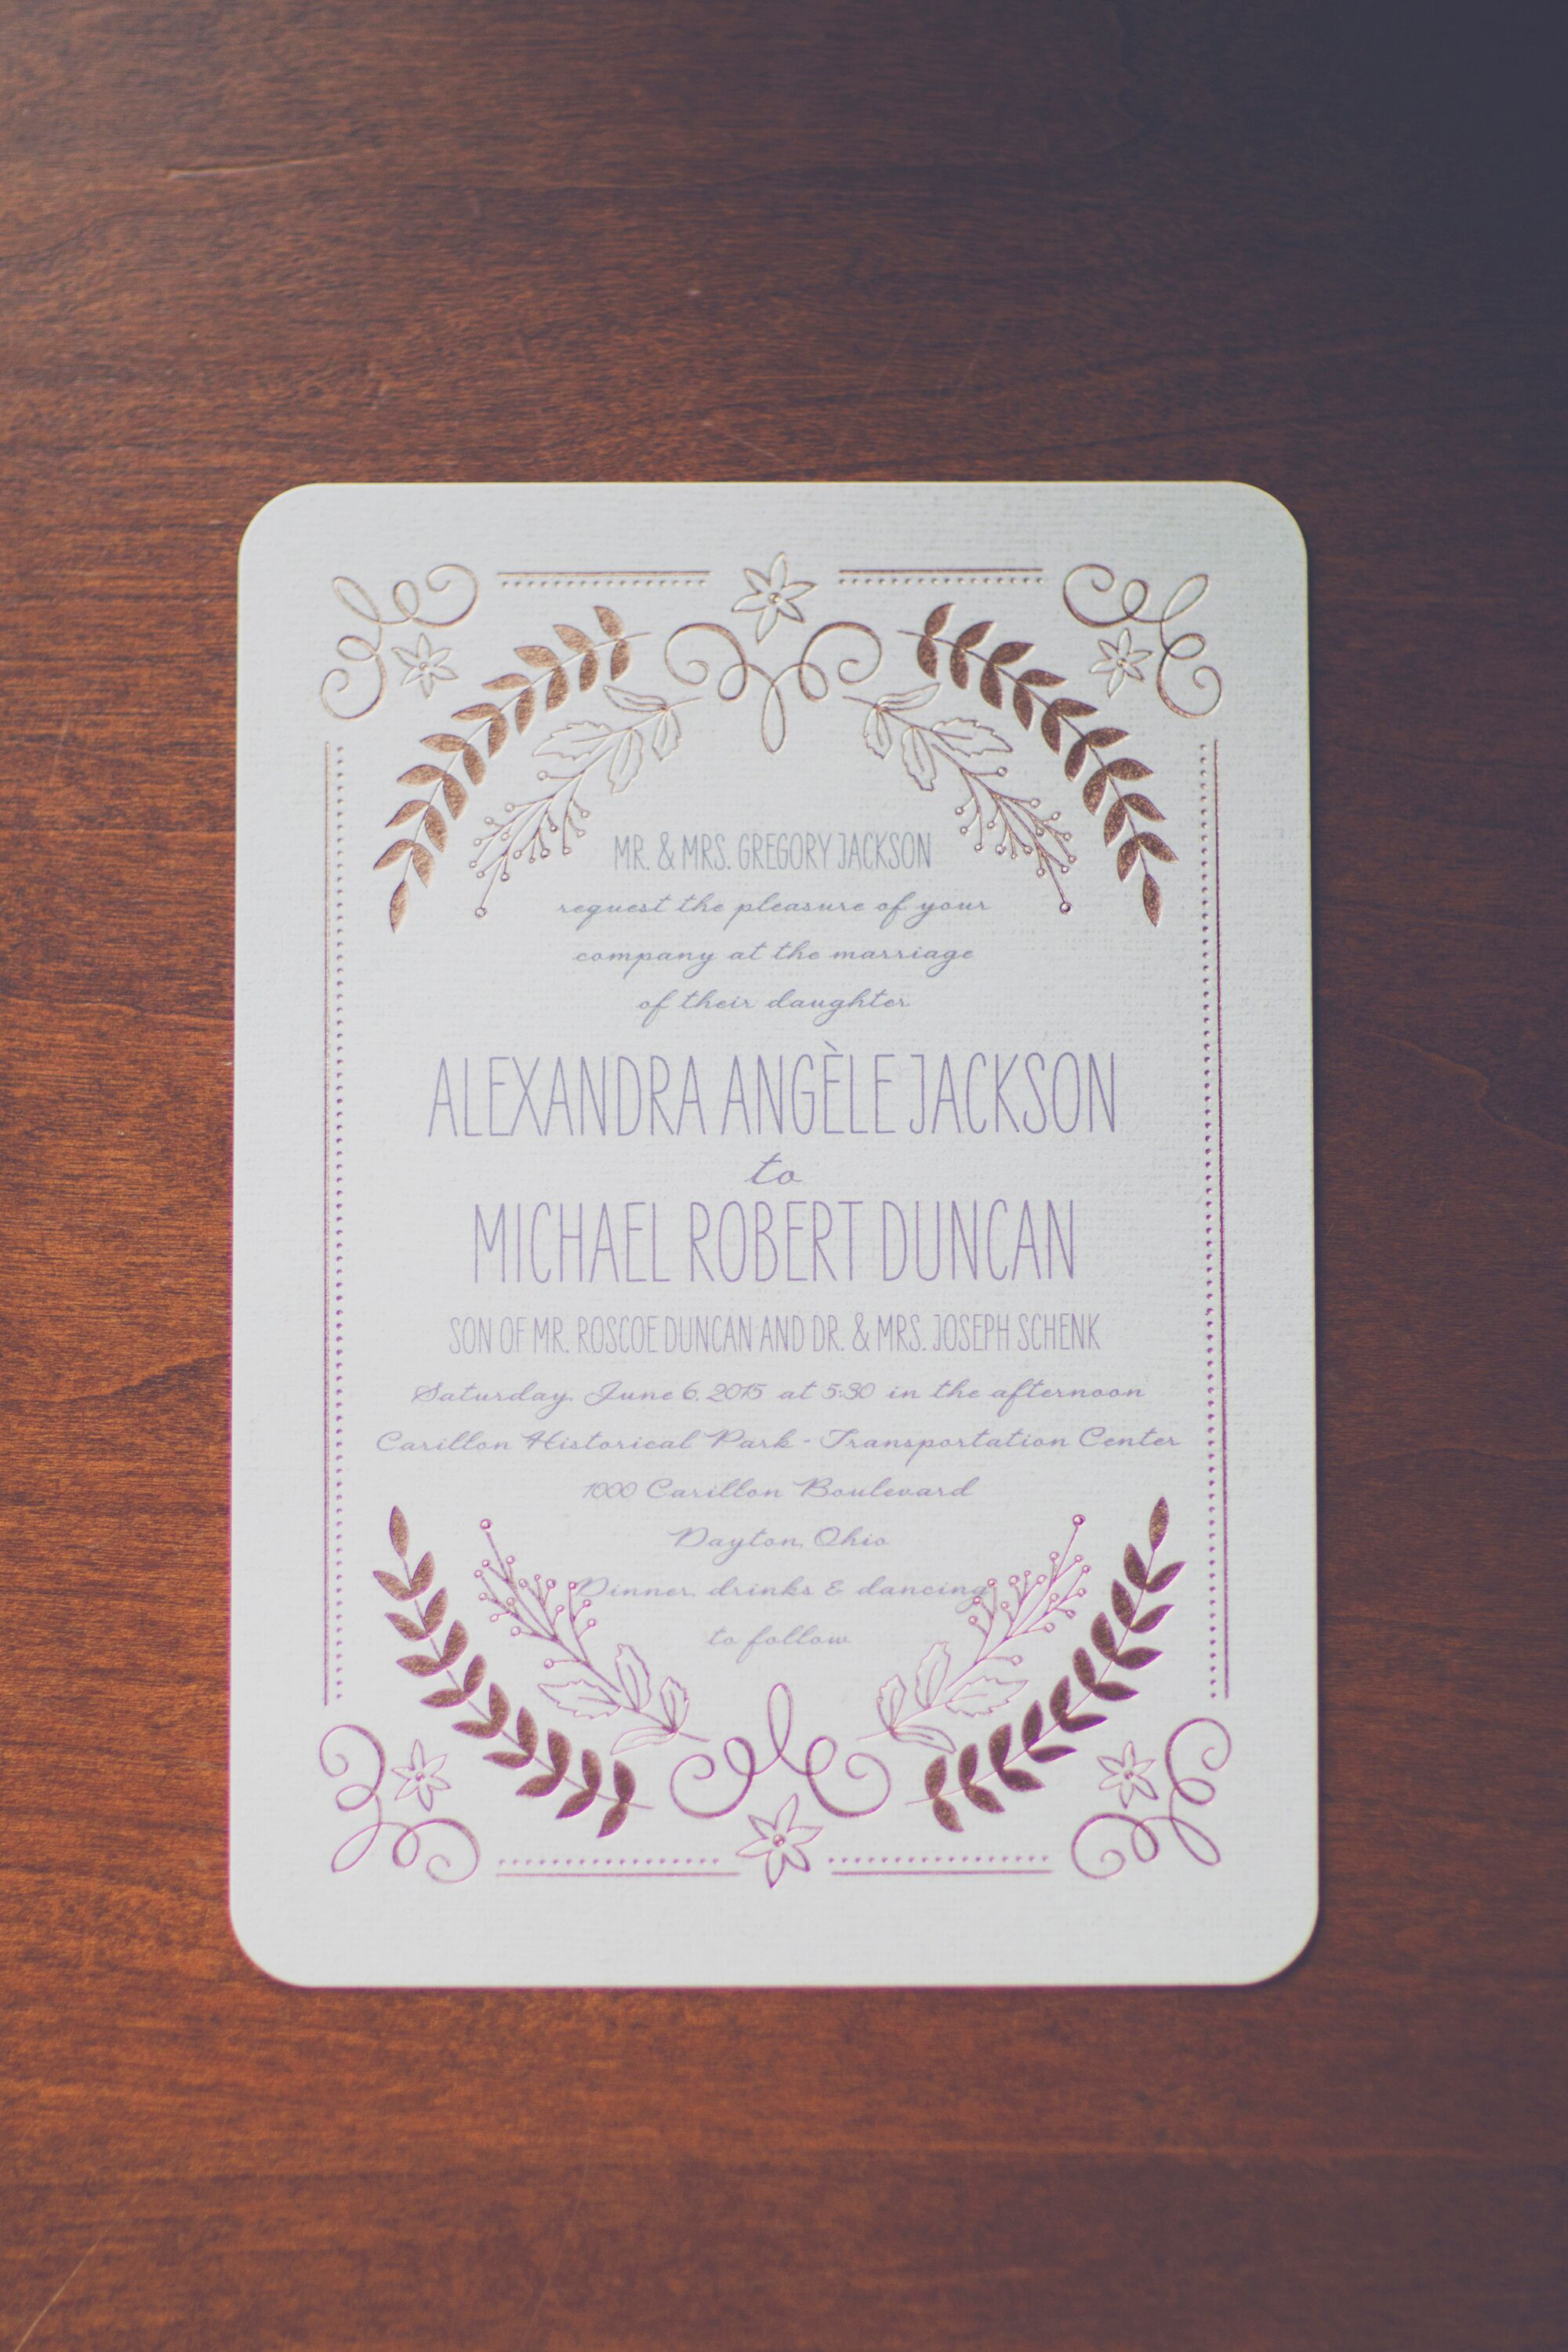 Wedding Invitations Dayton Ohio: Vintage Wedding Invitations With Gold Foil